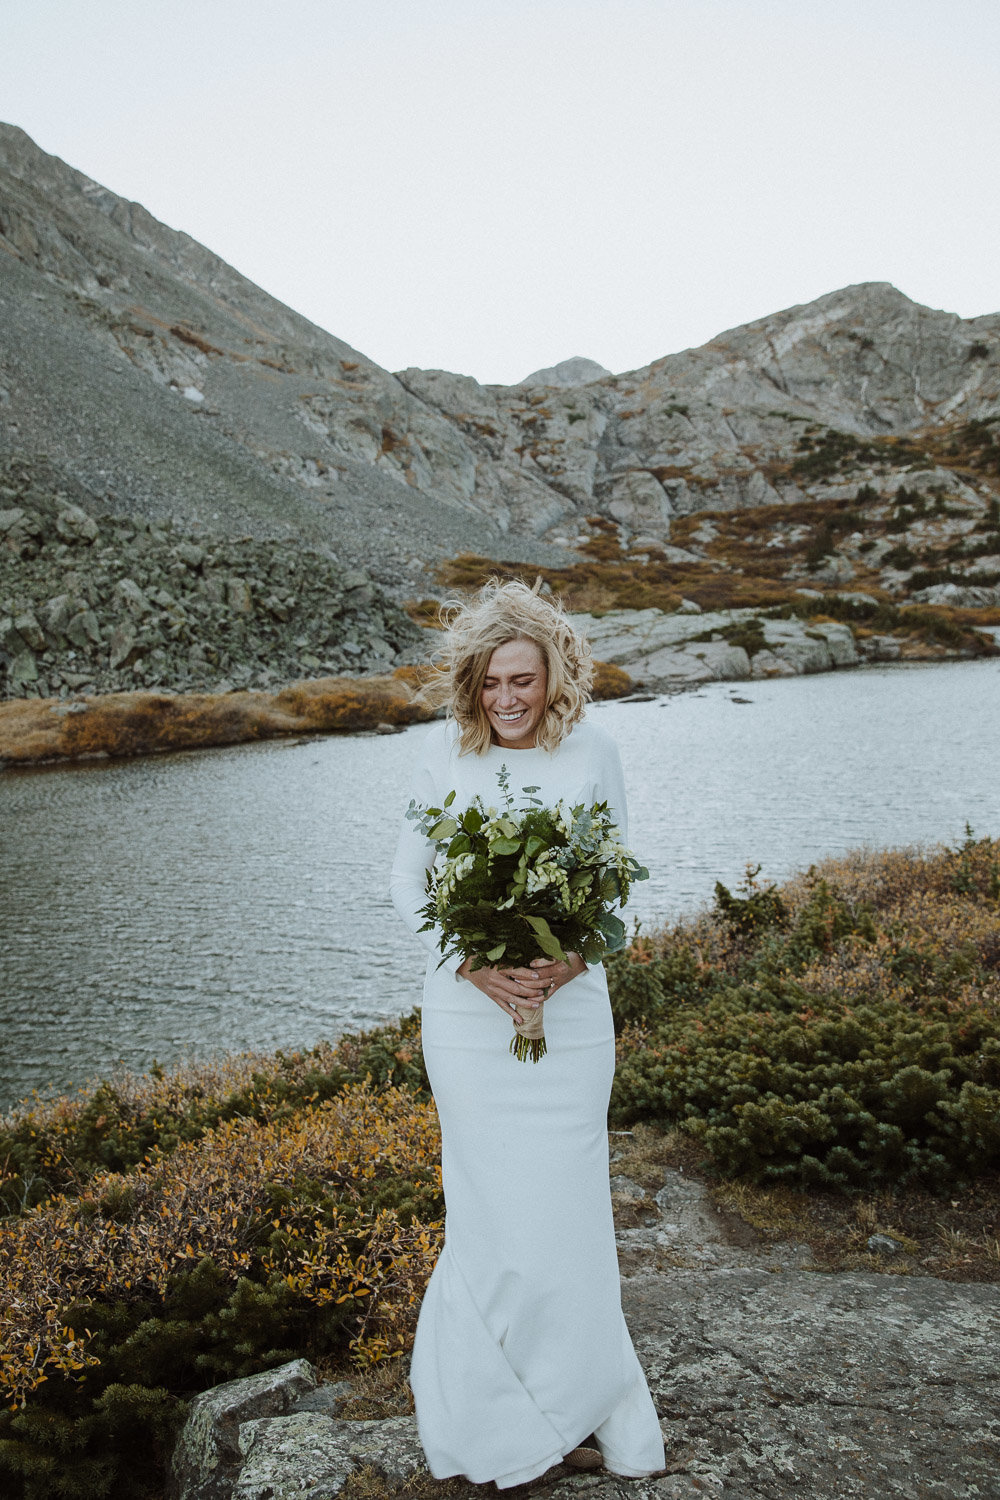 A photo of a bride standing in front of a mountain river holding a large white wedding bouquet, looking down and smiling